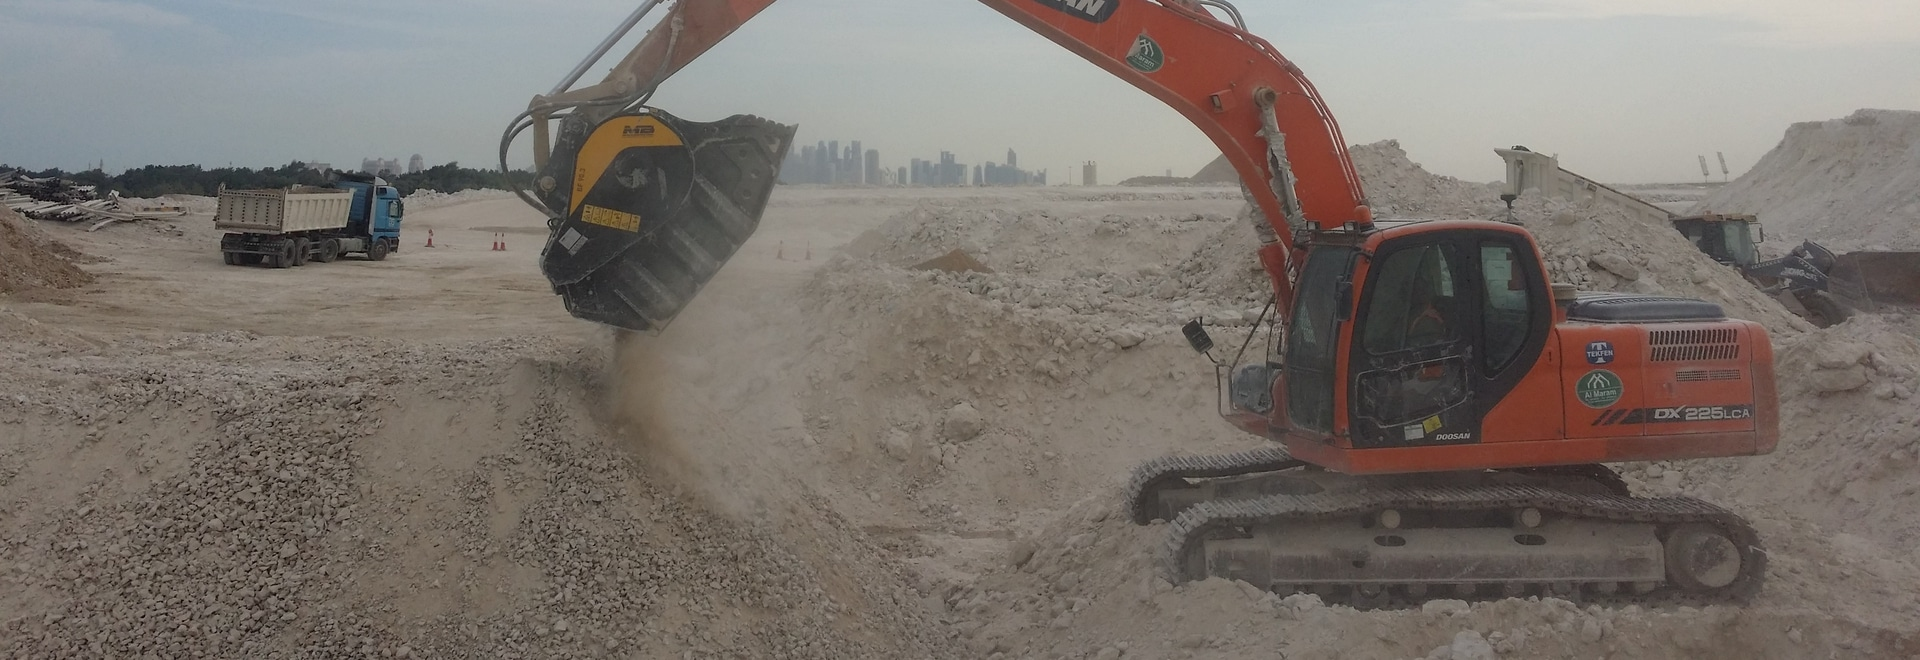 MB Crusher Bucket BF 90.3 at work on Al Khor Expressway to save time and costs.